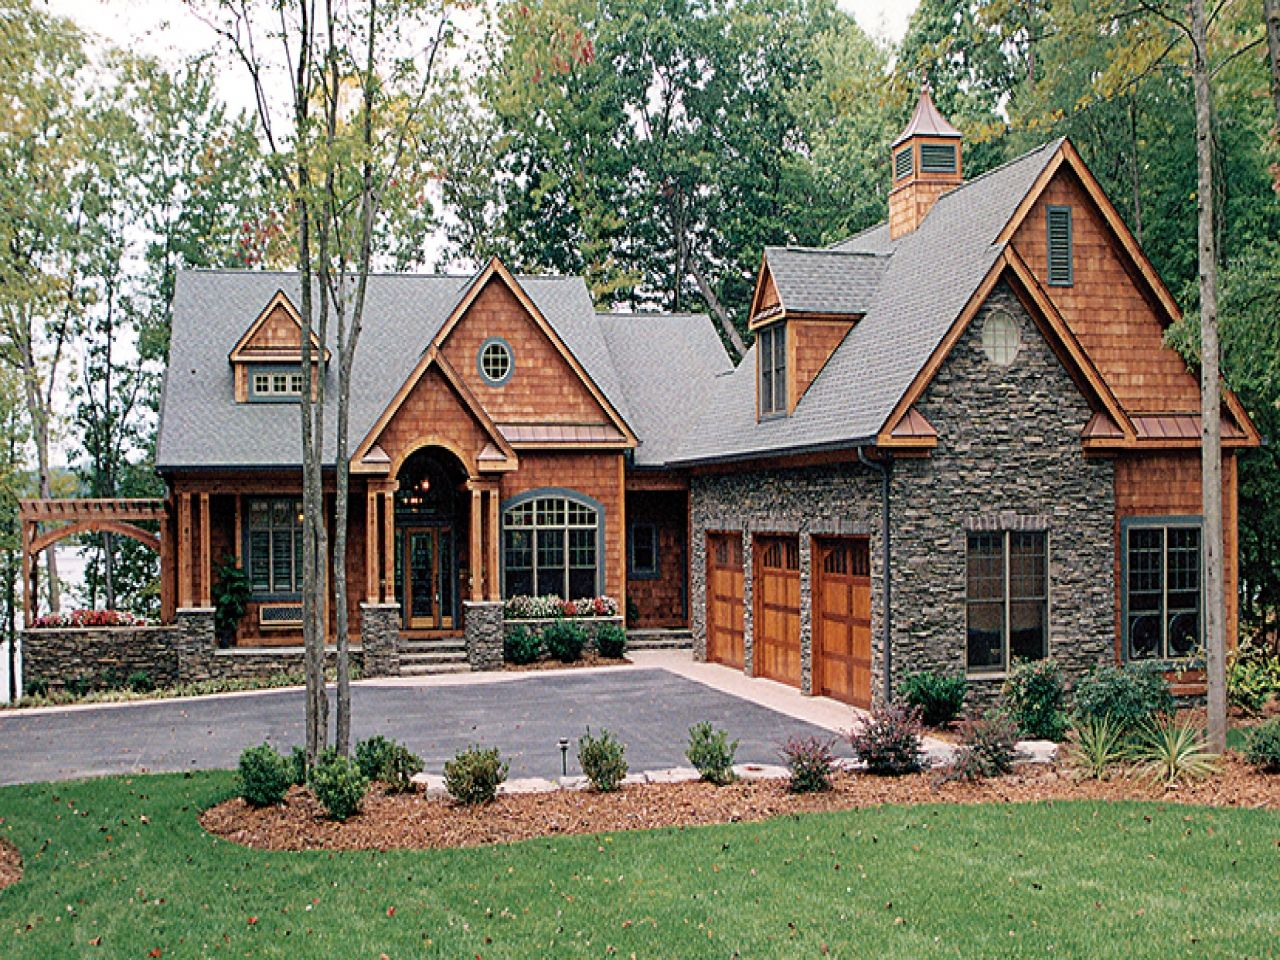 Popular Design 2000 Sq Ft Ranch House Plans With Walkout Basement In 2020 Craftsman Style House Plans Craftsman House Plans Modern Lake House